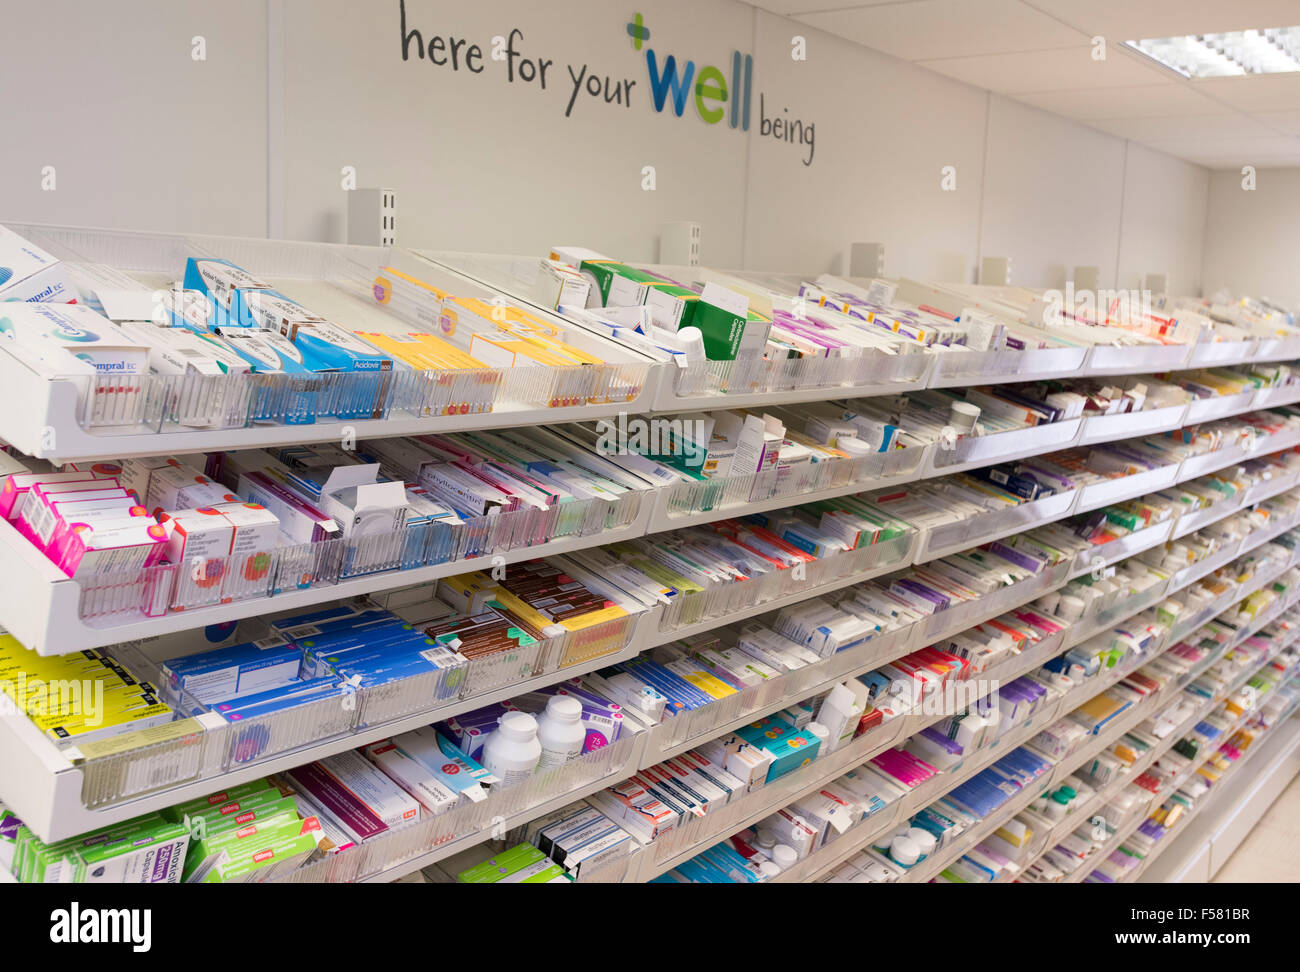 Drugs and medicines on pharmacy shelves in a chemist store. - Stock Image